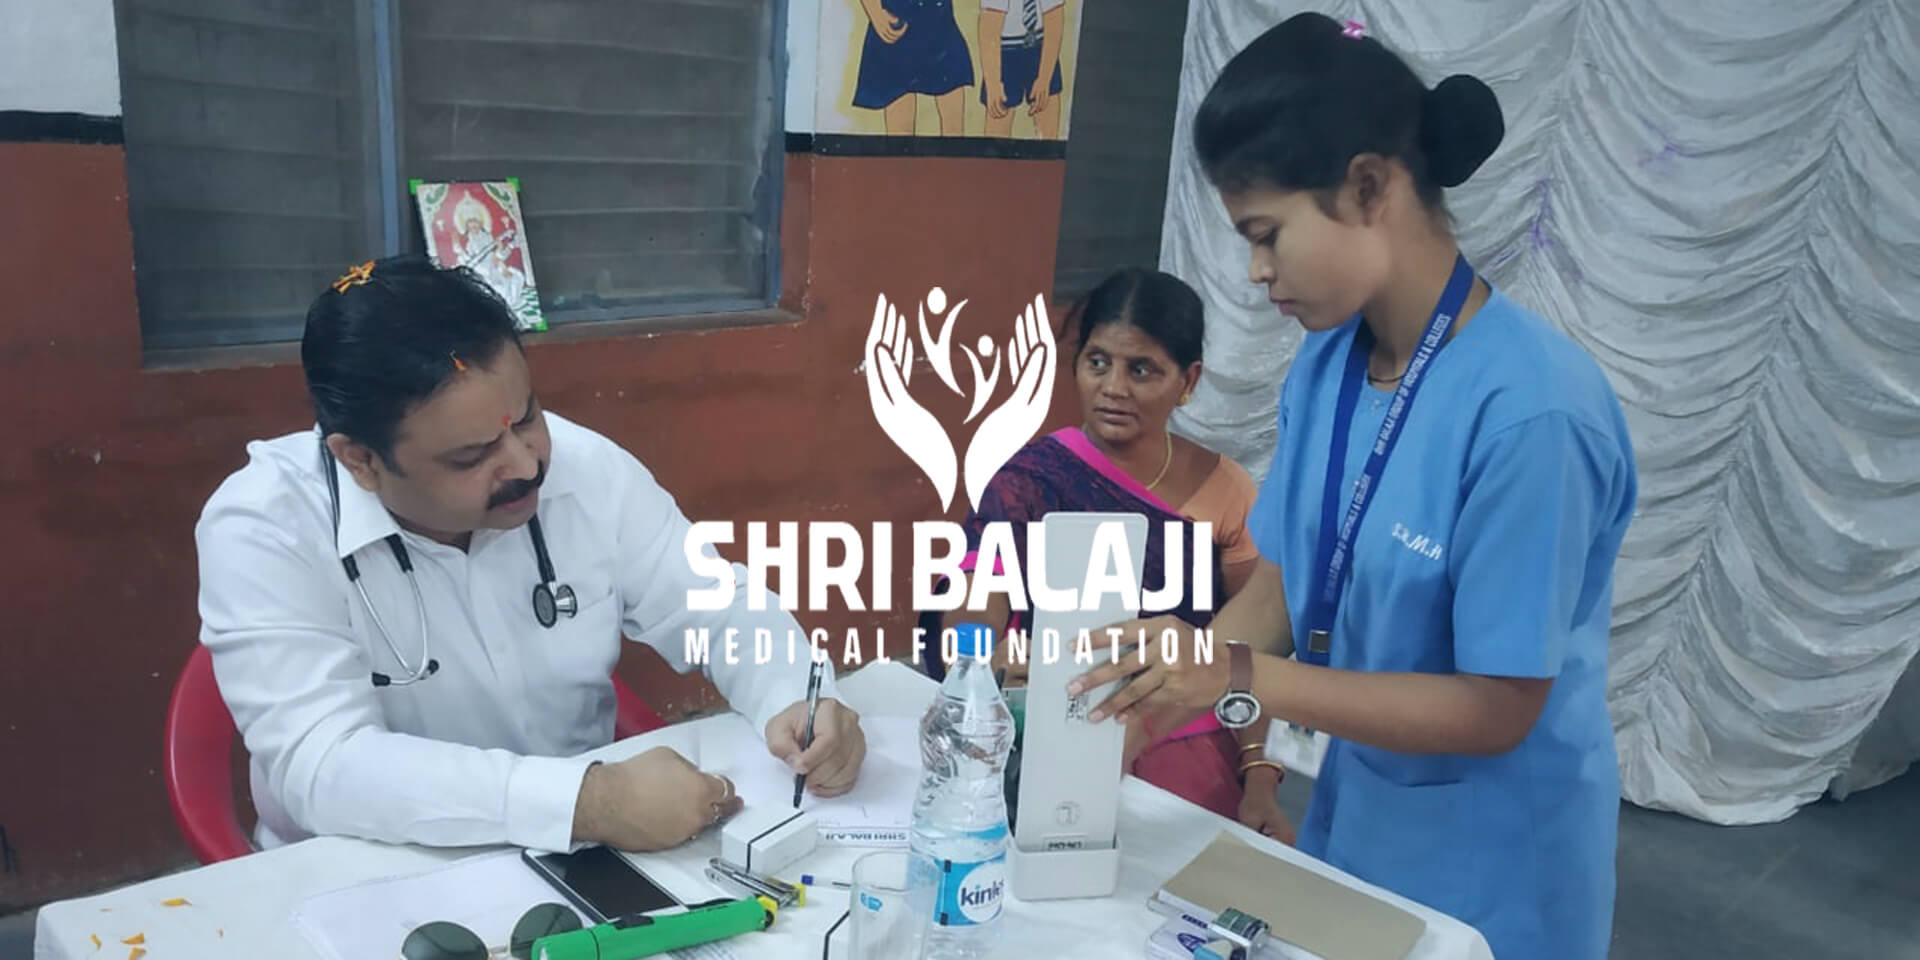 Shri Balaji Medical Foundation